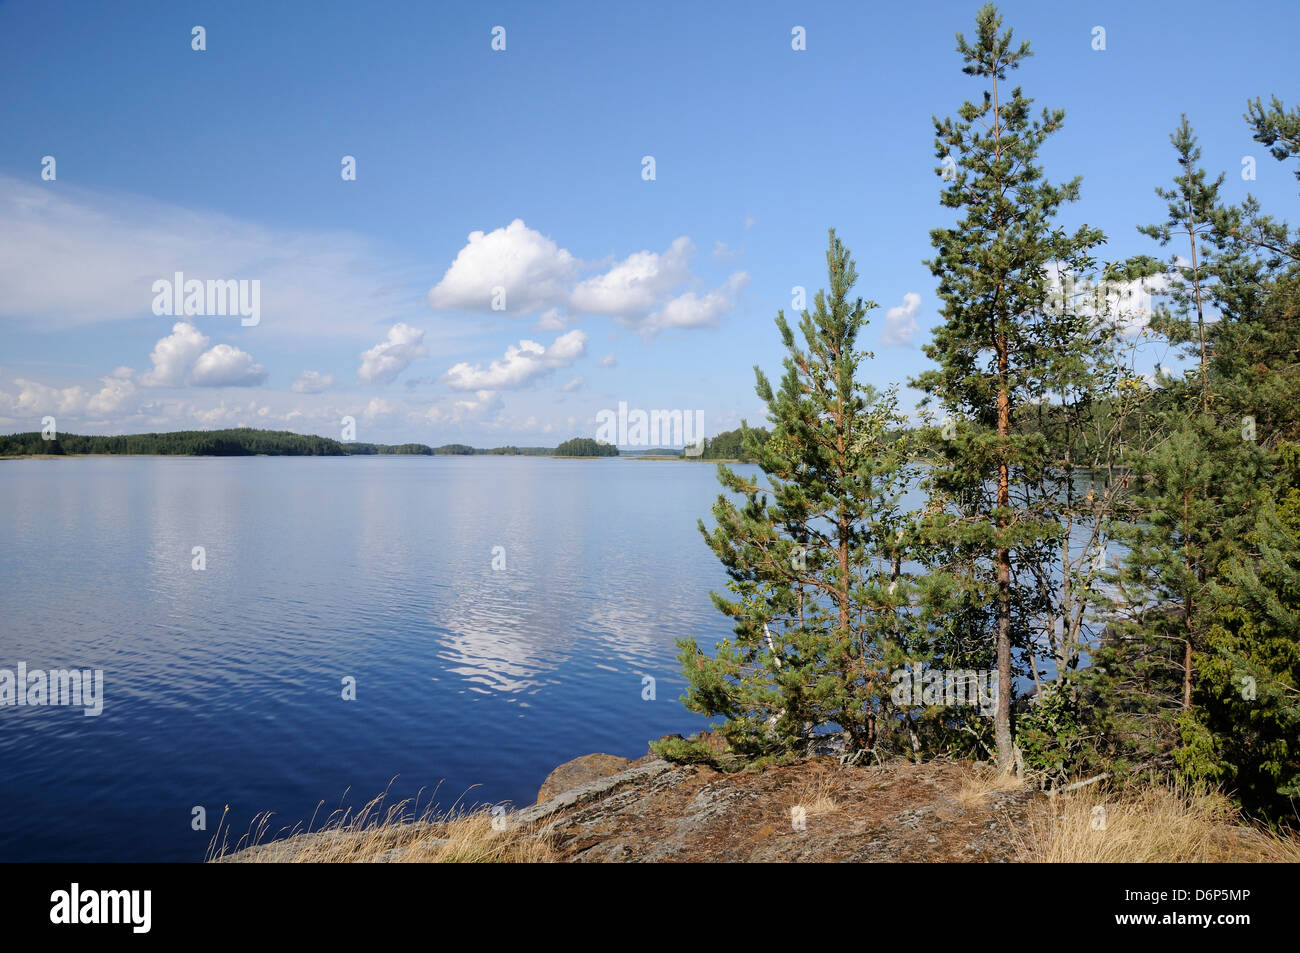 Young Scots pine trees (Pinus sylvestris) growing near rocky shore of Lake Saimaa, near Savonlinna, Finland, Scandinavia, - Stock Image